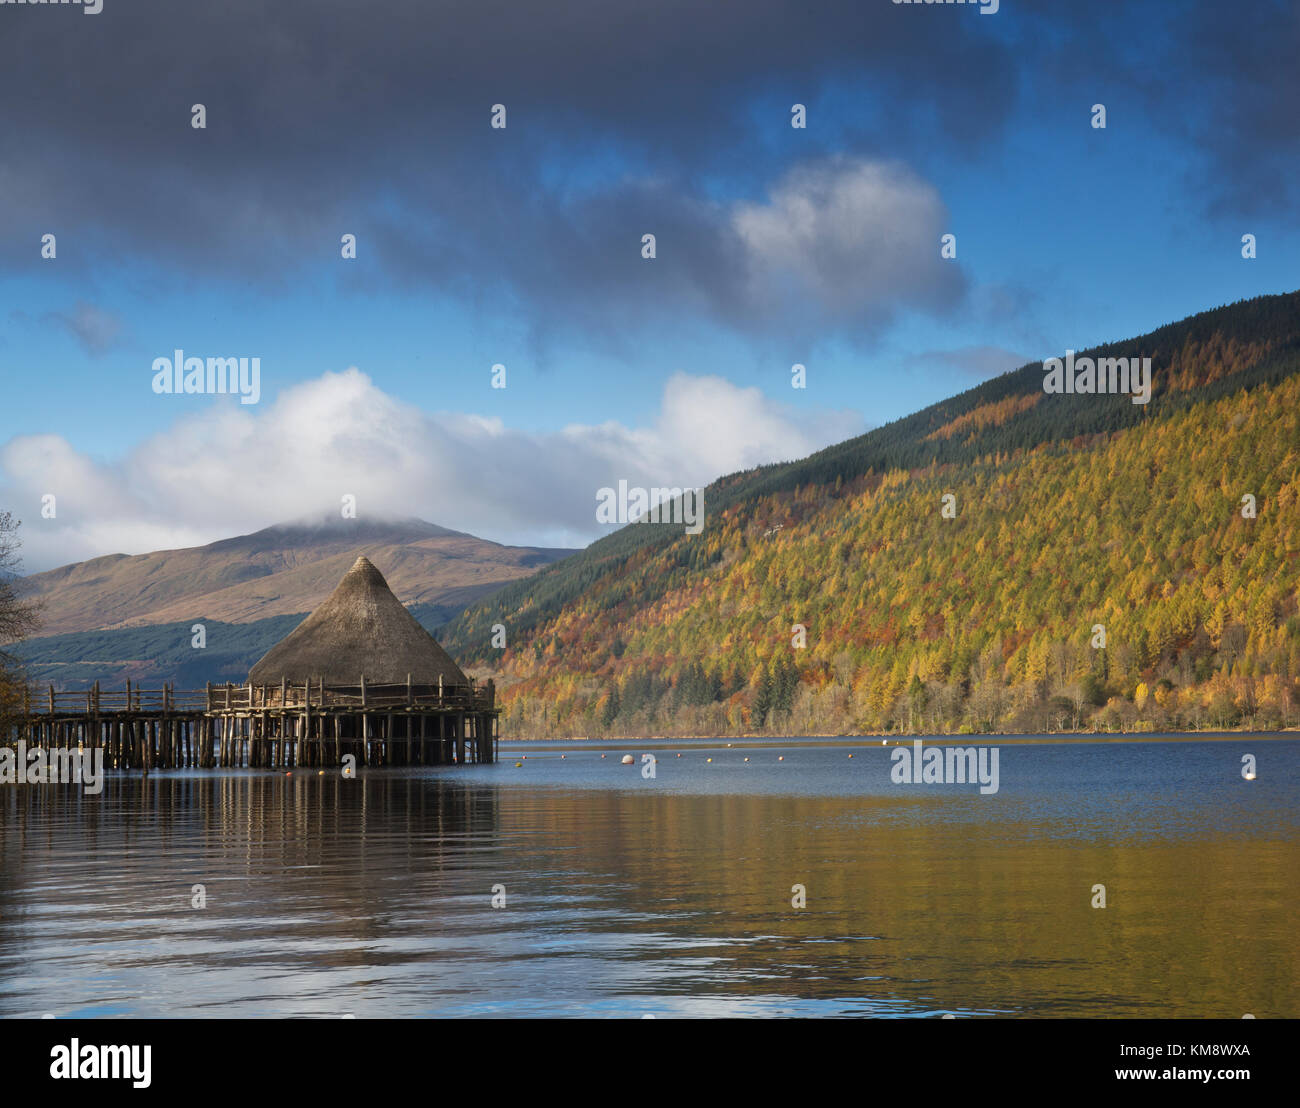 Crannog at Kenmore, Loch Tay, Perthshire, Scotland - Stock Image